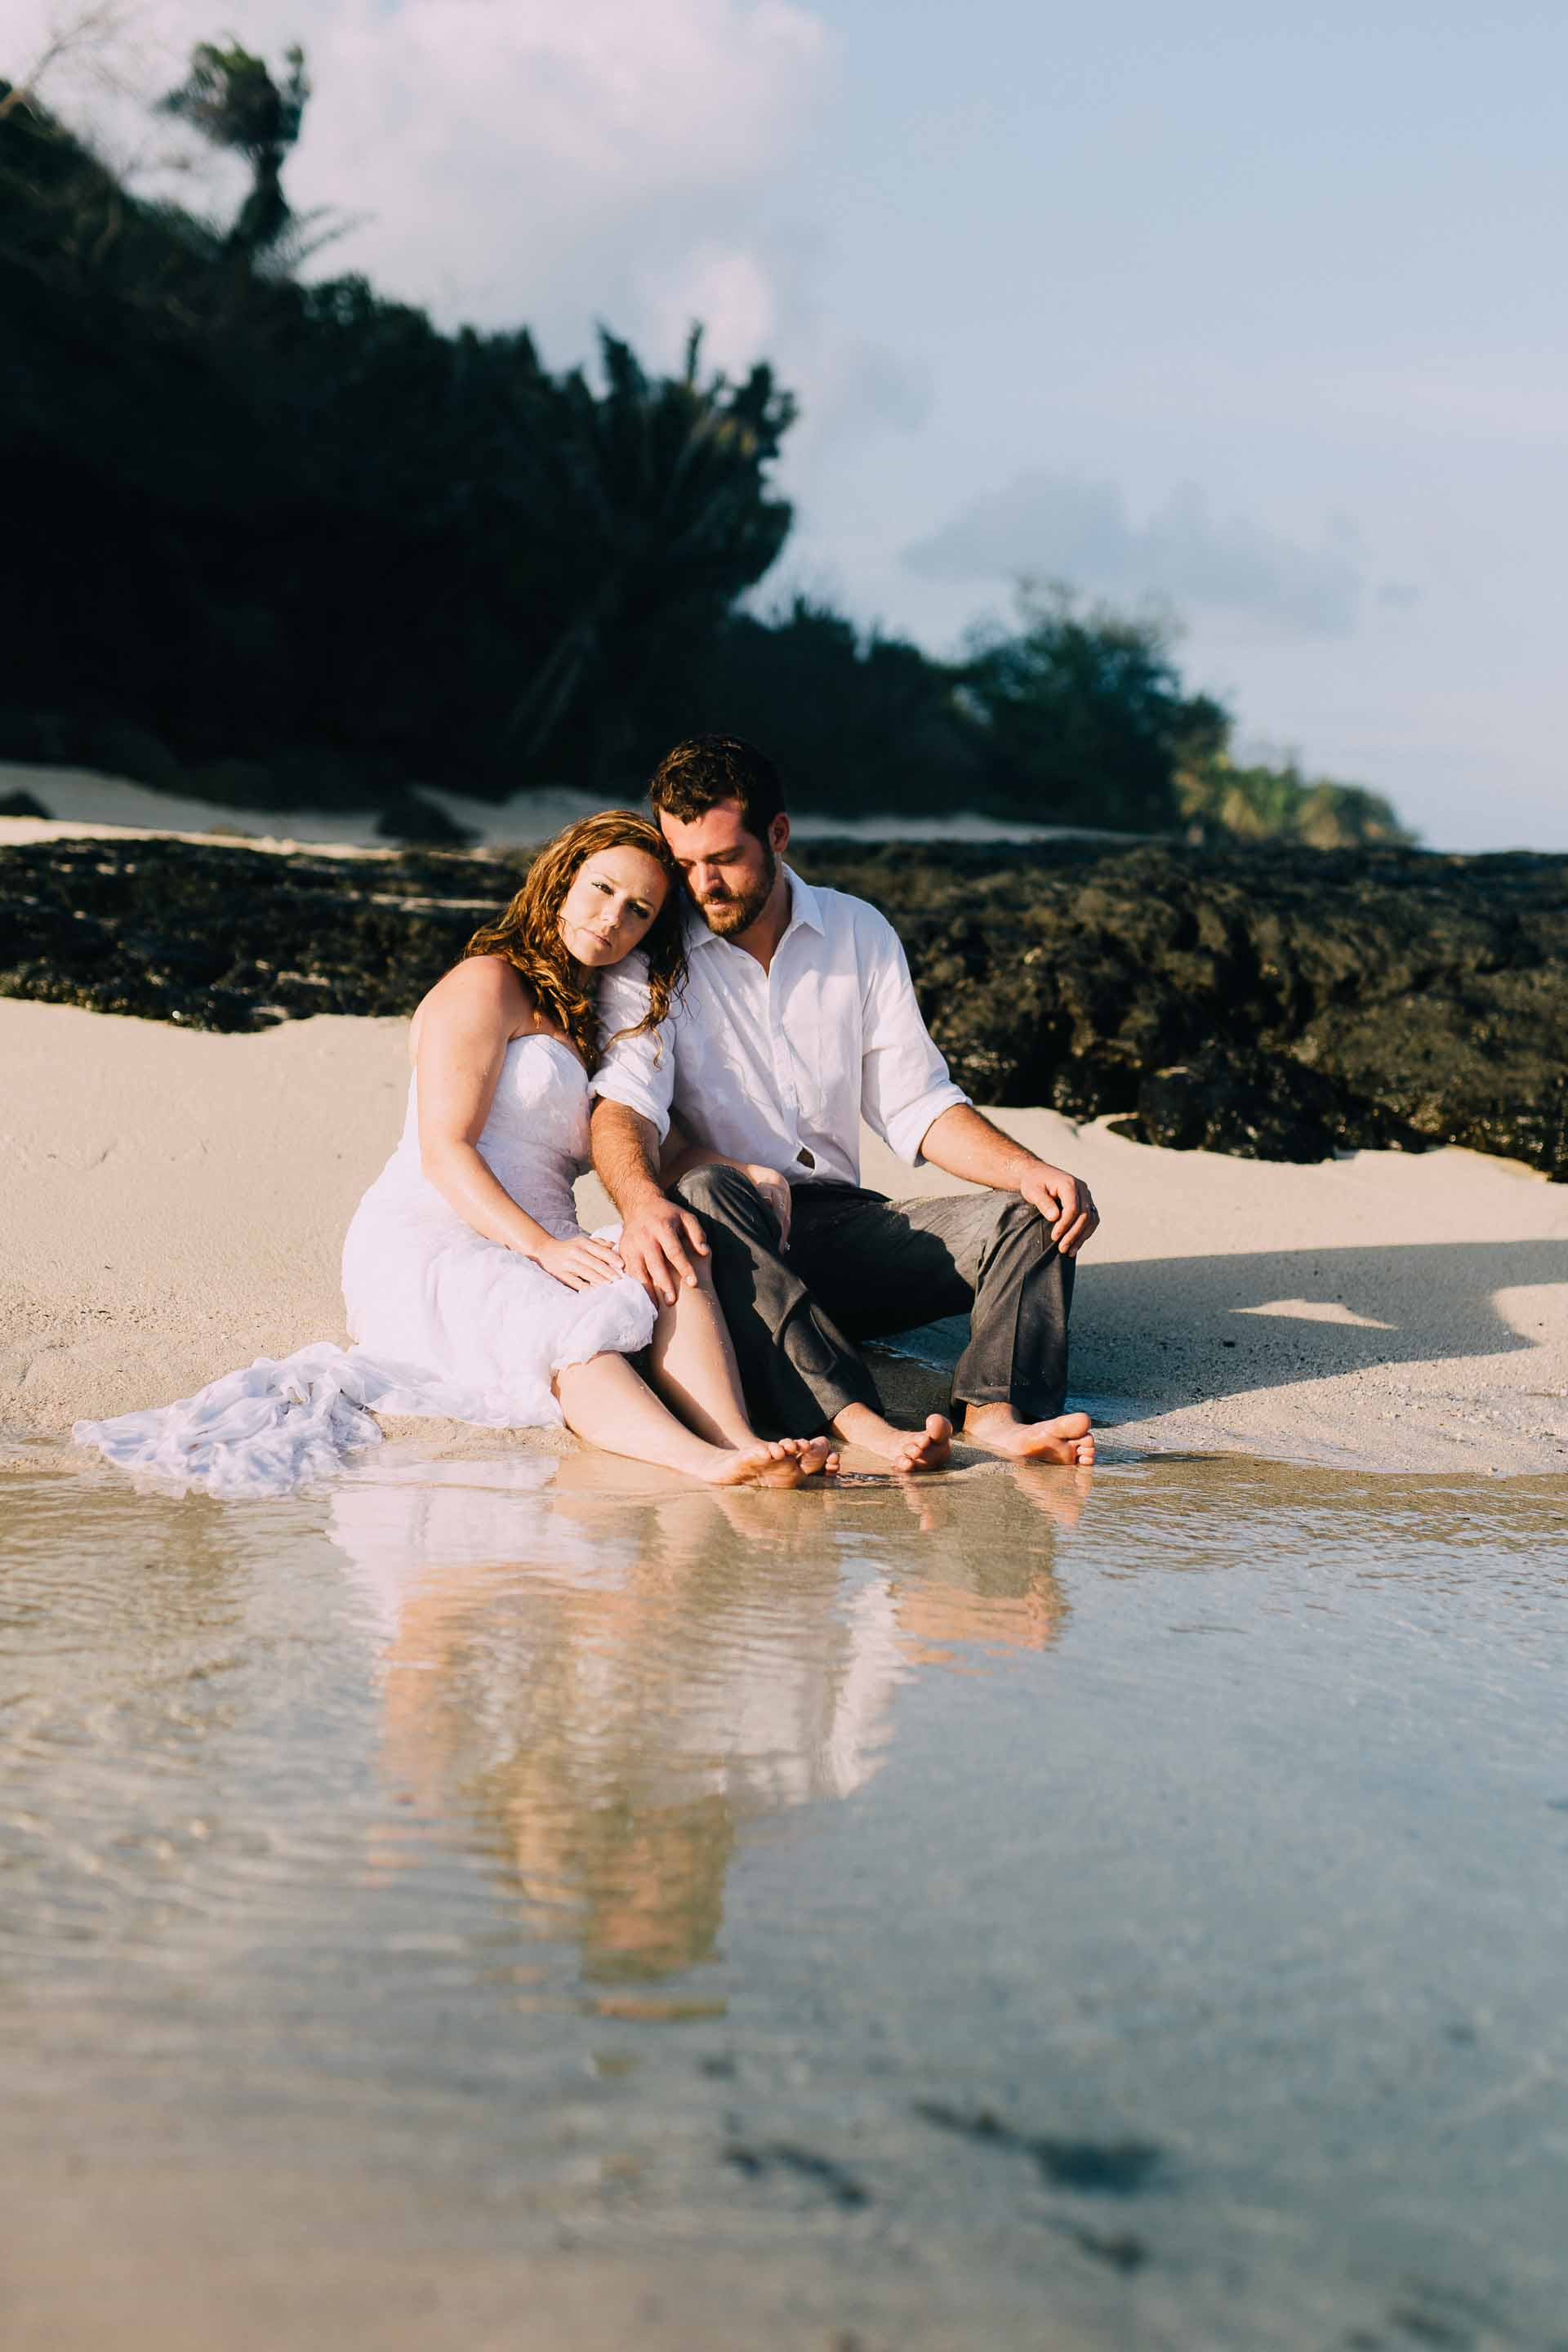 Newlyweds looking at camera as they sit on the beach, wet